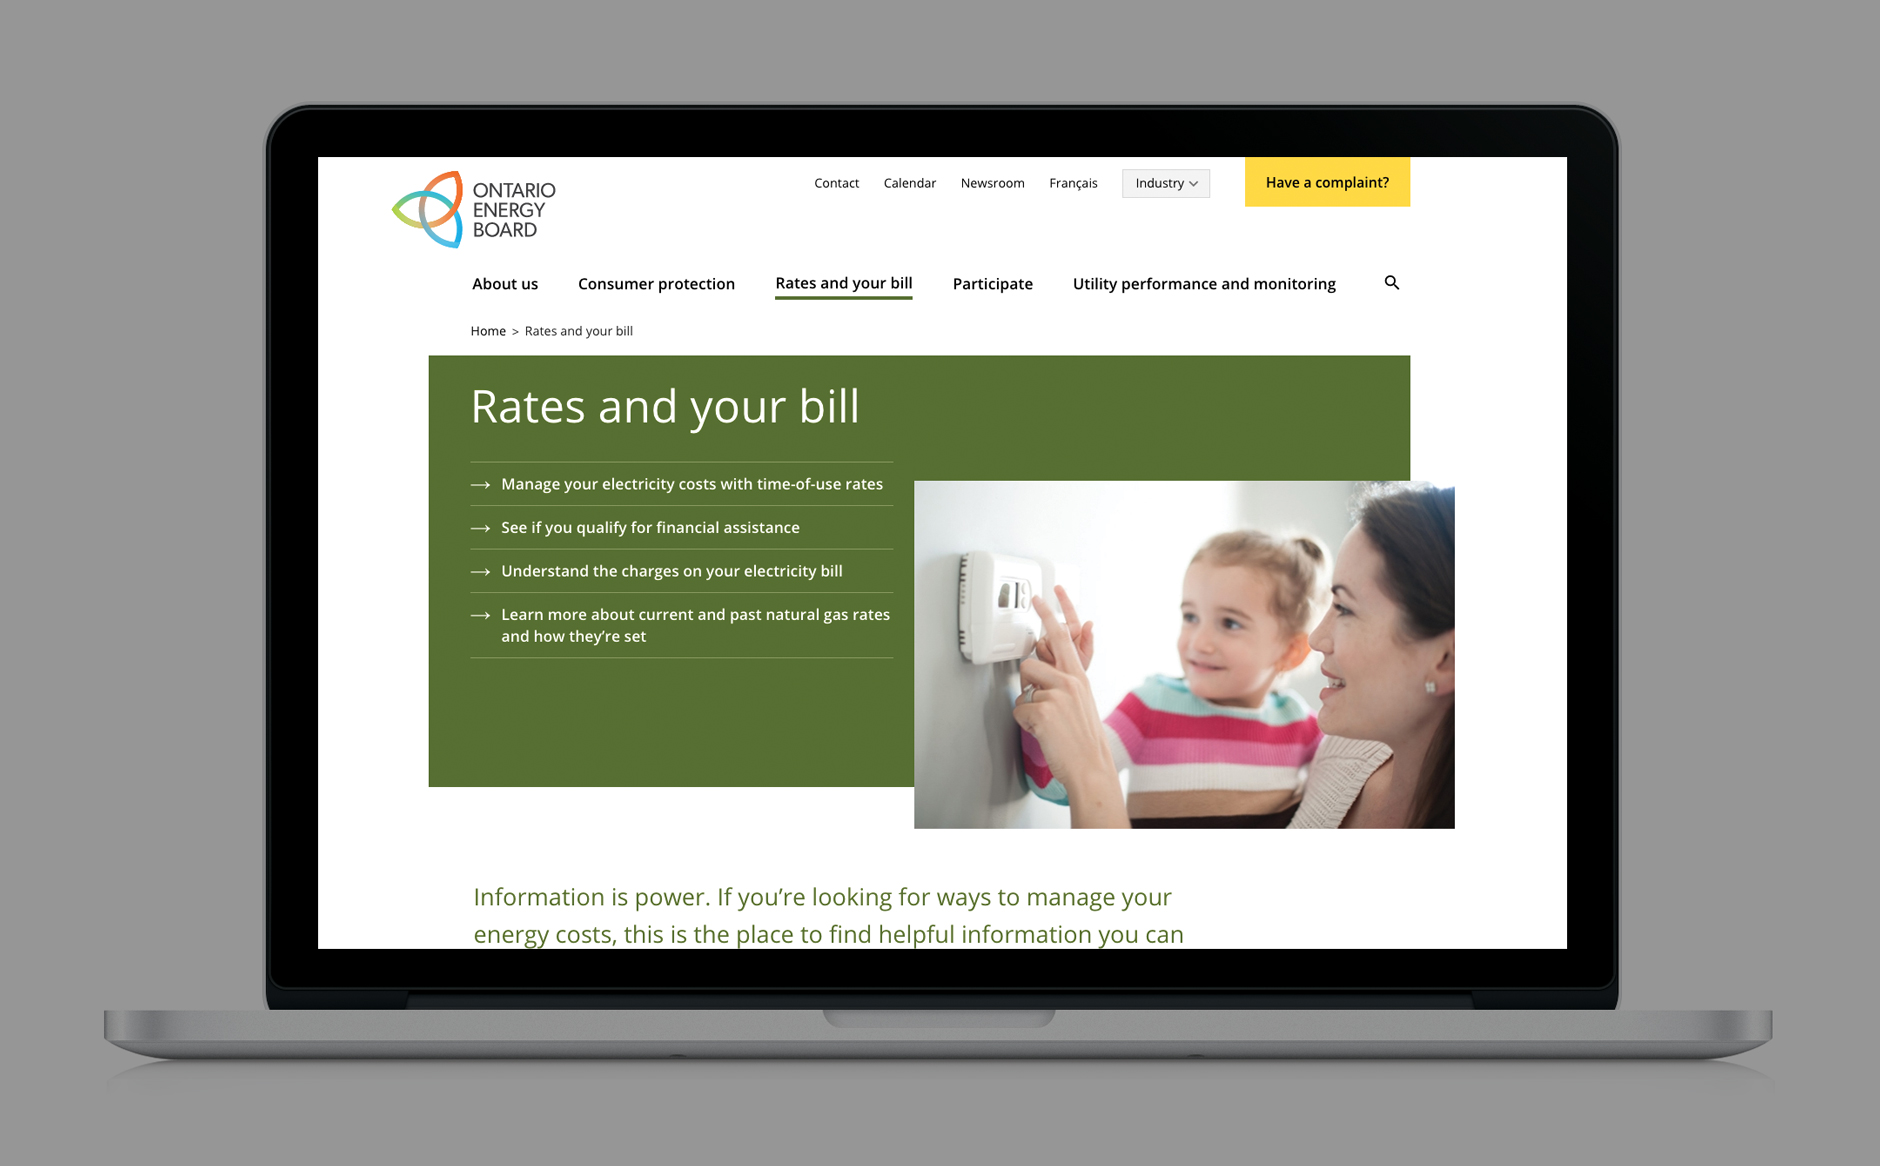 OEB website Rates and Bill page